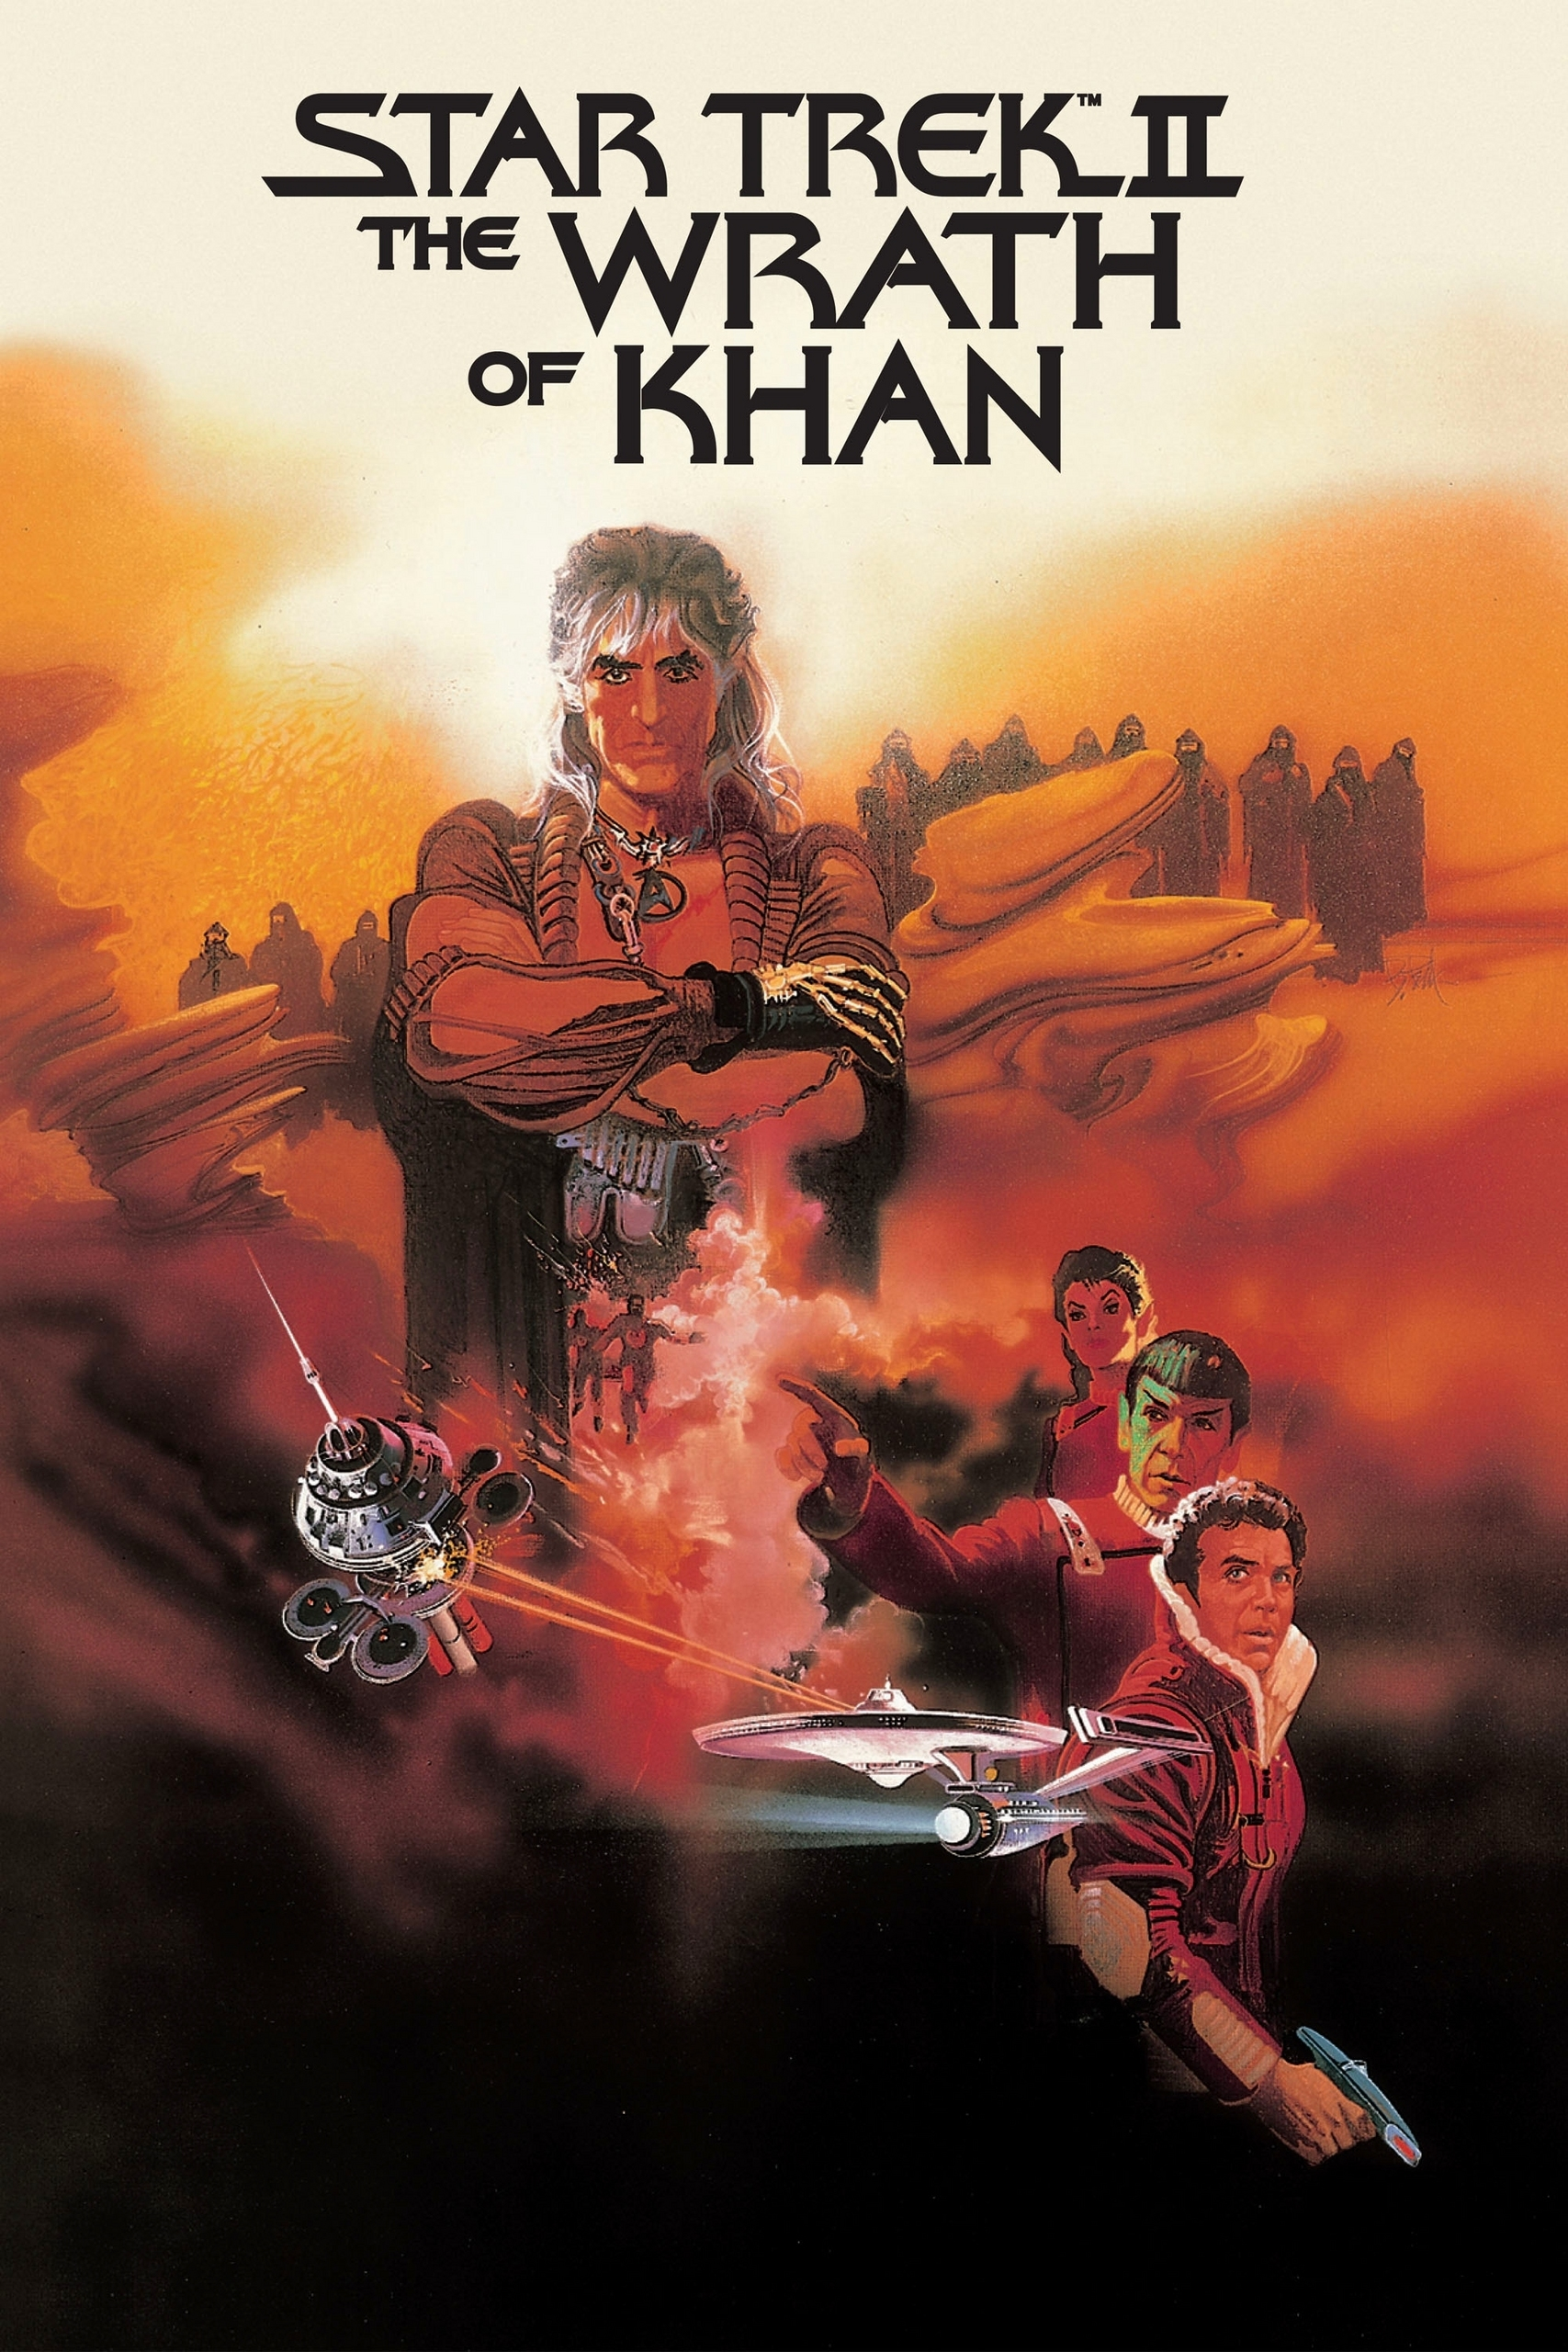 Star-Trek-II-The-Wrath-of-Khan-poster-star-trek-movies-8475612-1707-2560